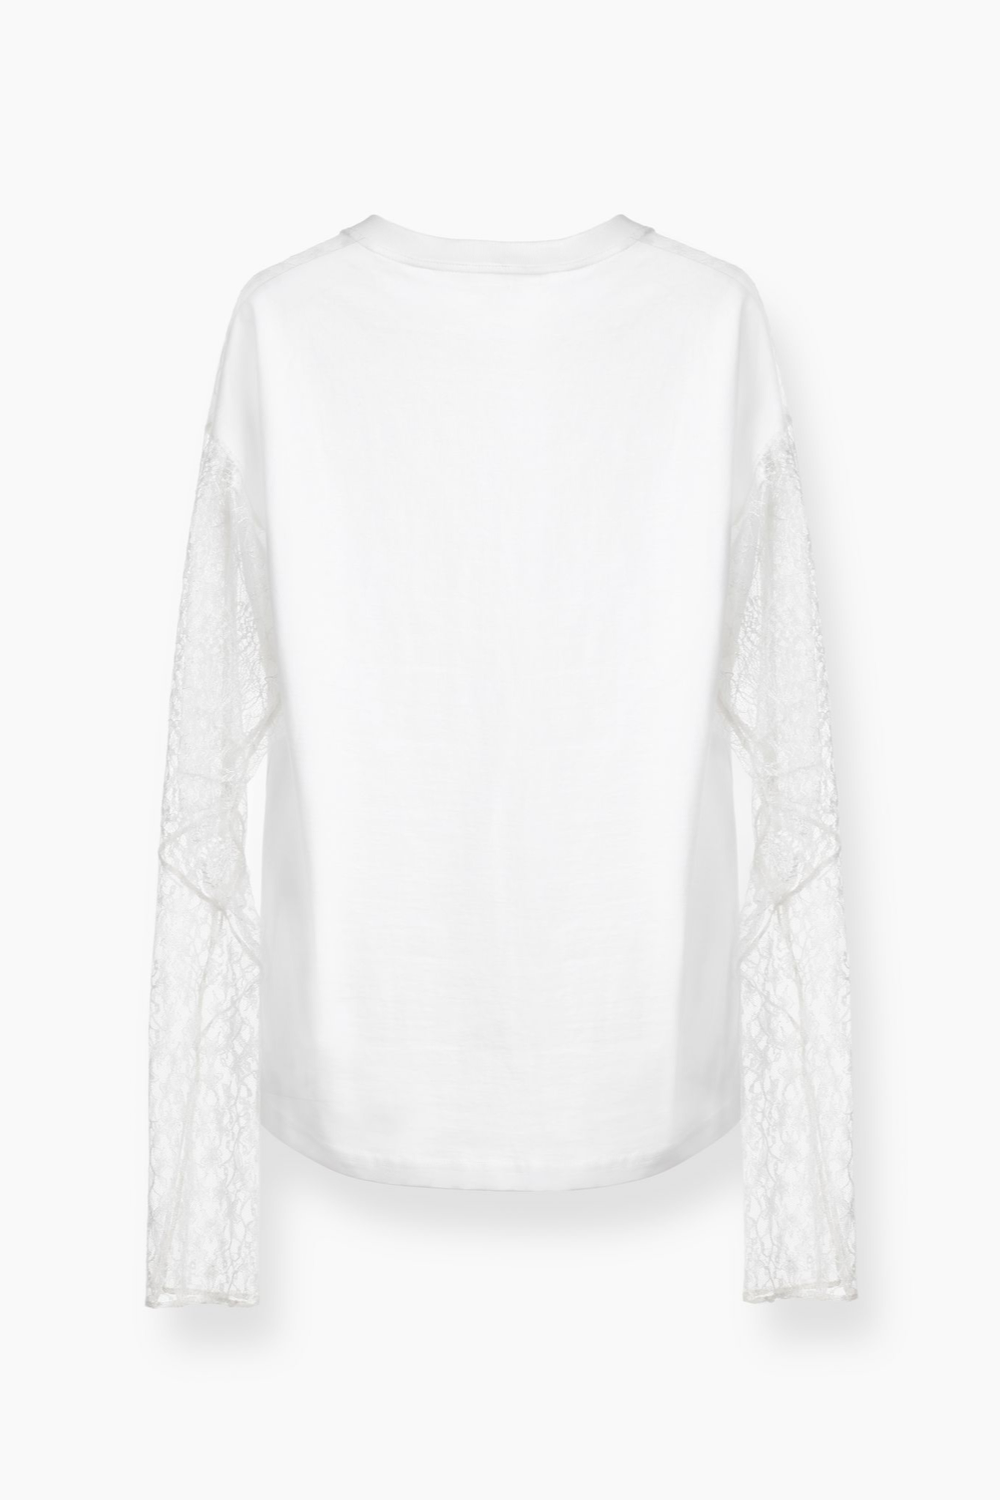 Lace Jersey Cotton Top - The Bobby Boga